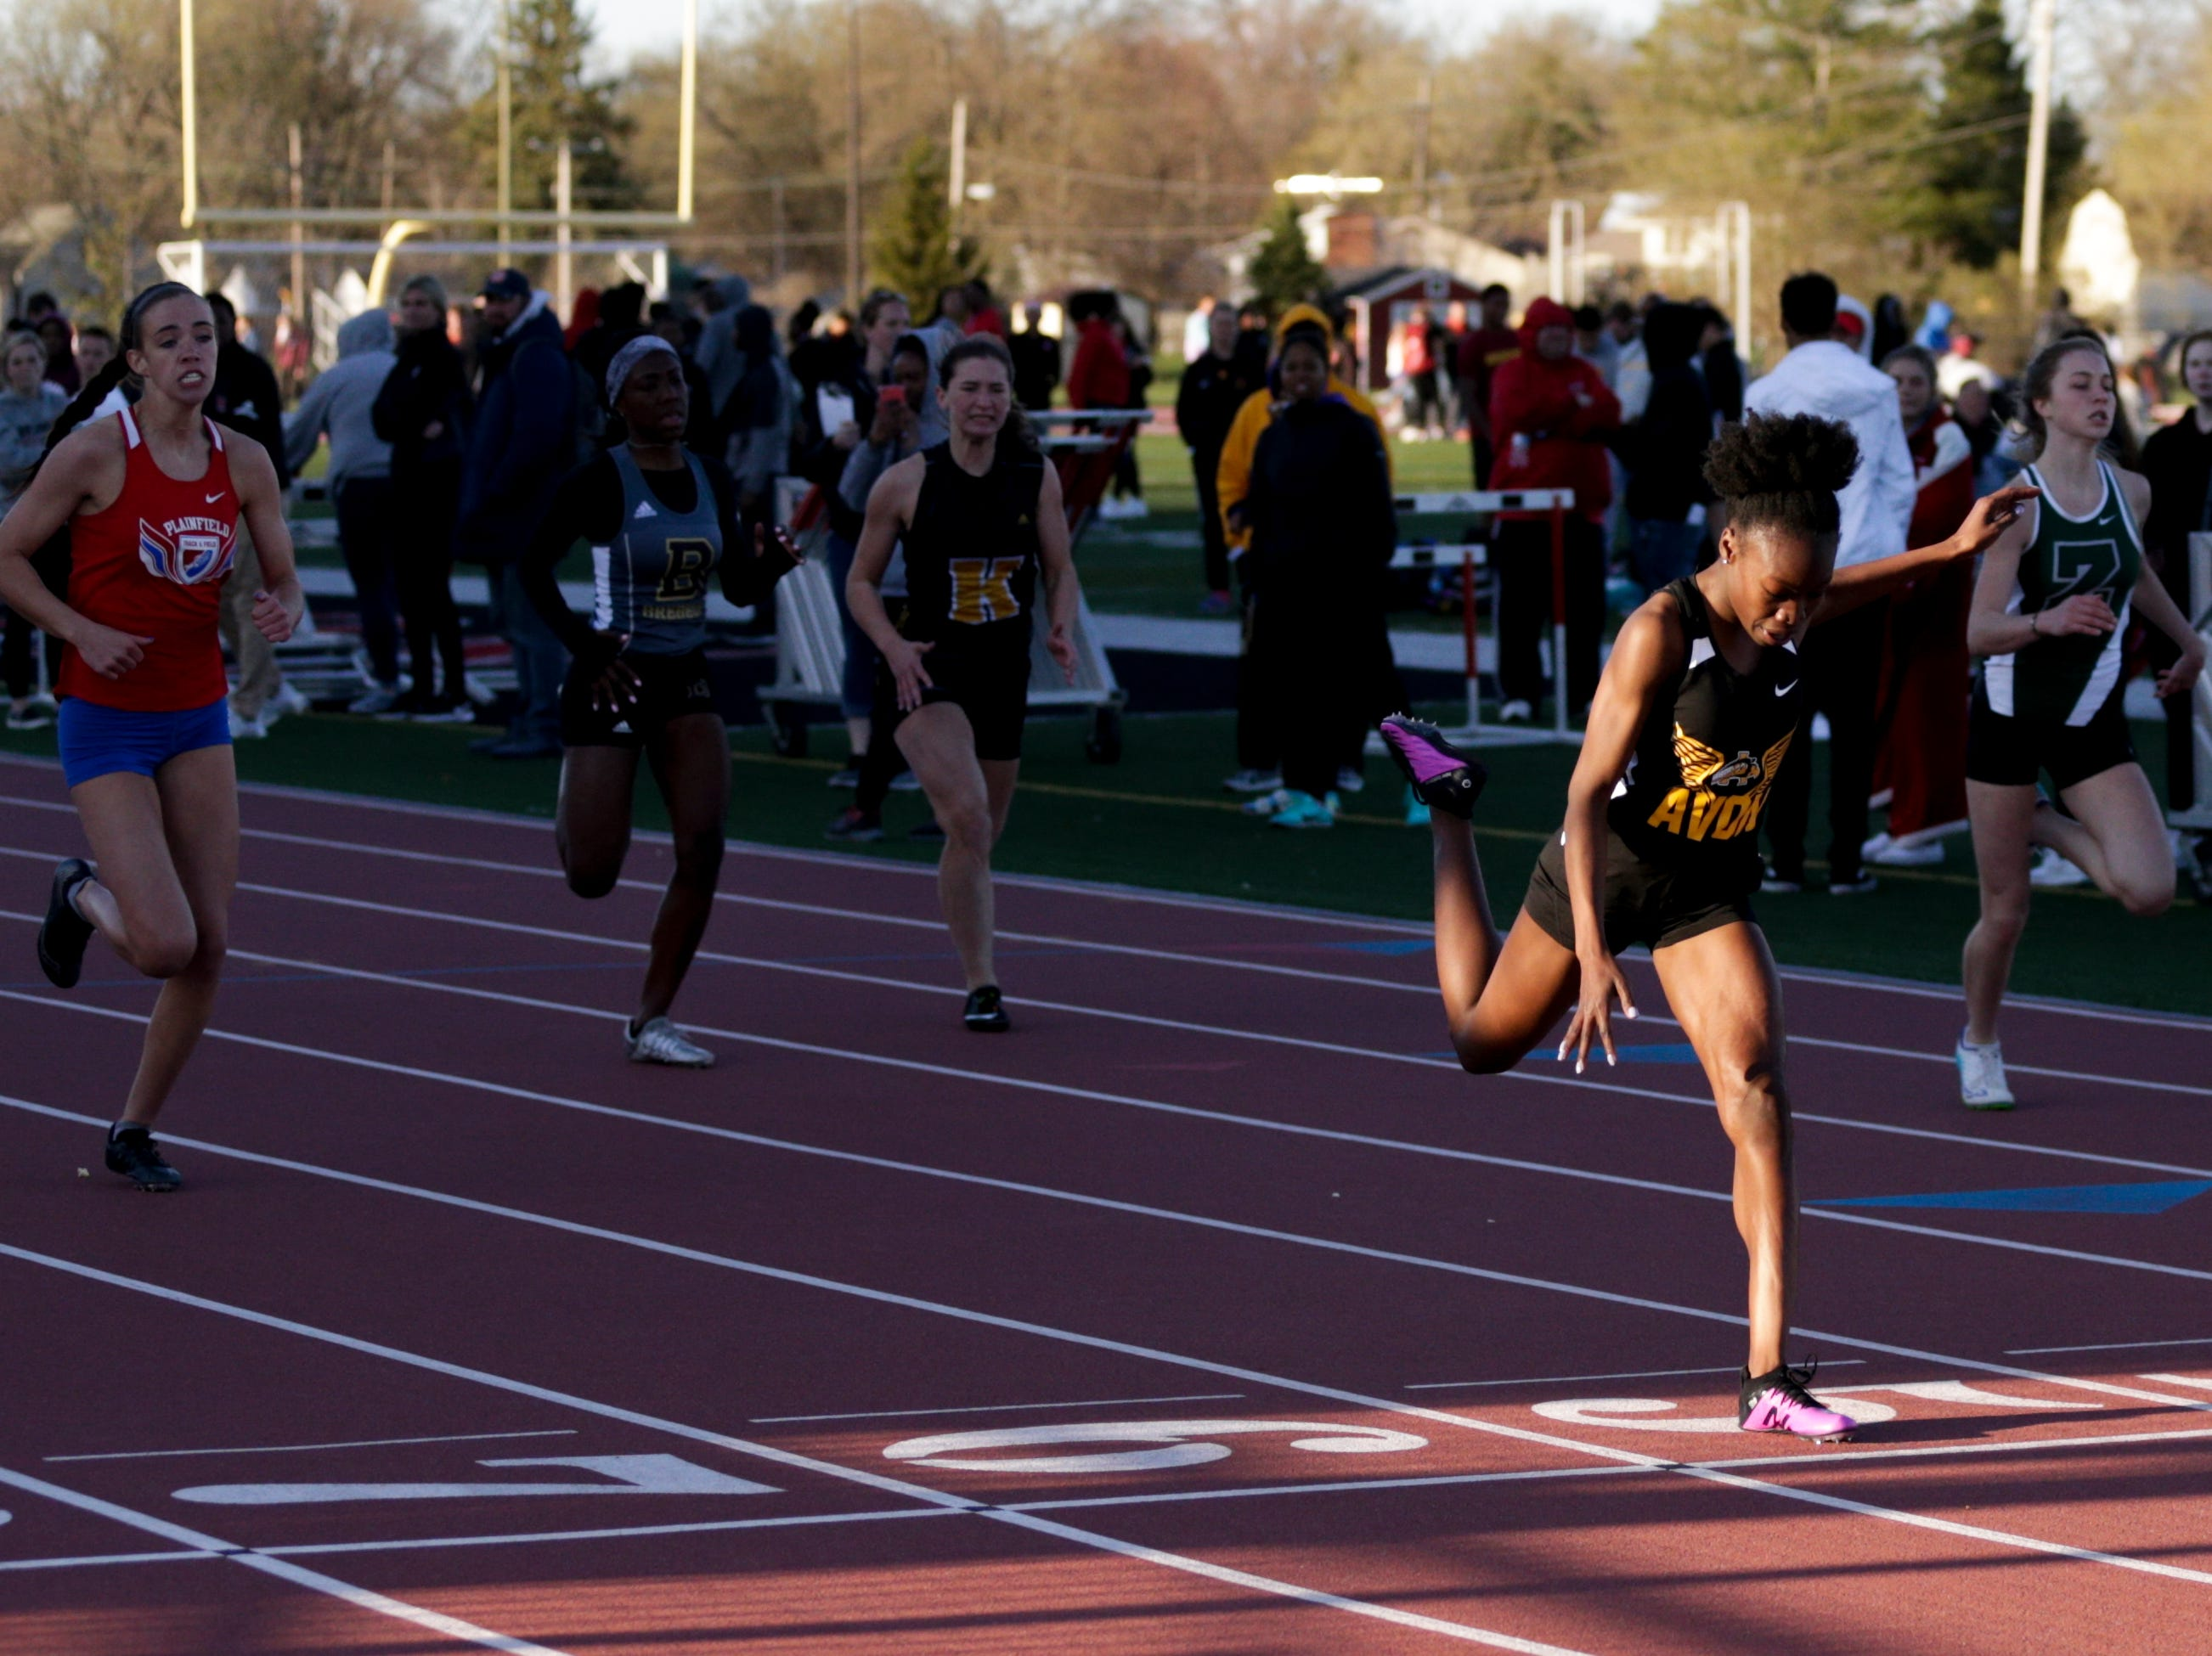 Avon's Alana Springer crosses the finish line in the women's 200 meter dash during the 2019 Sprinters Showcase, Friday, April 12, 2019, at Lafayette Jeff High School in Lafayette.